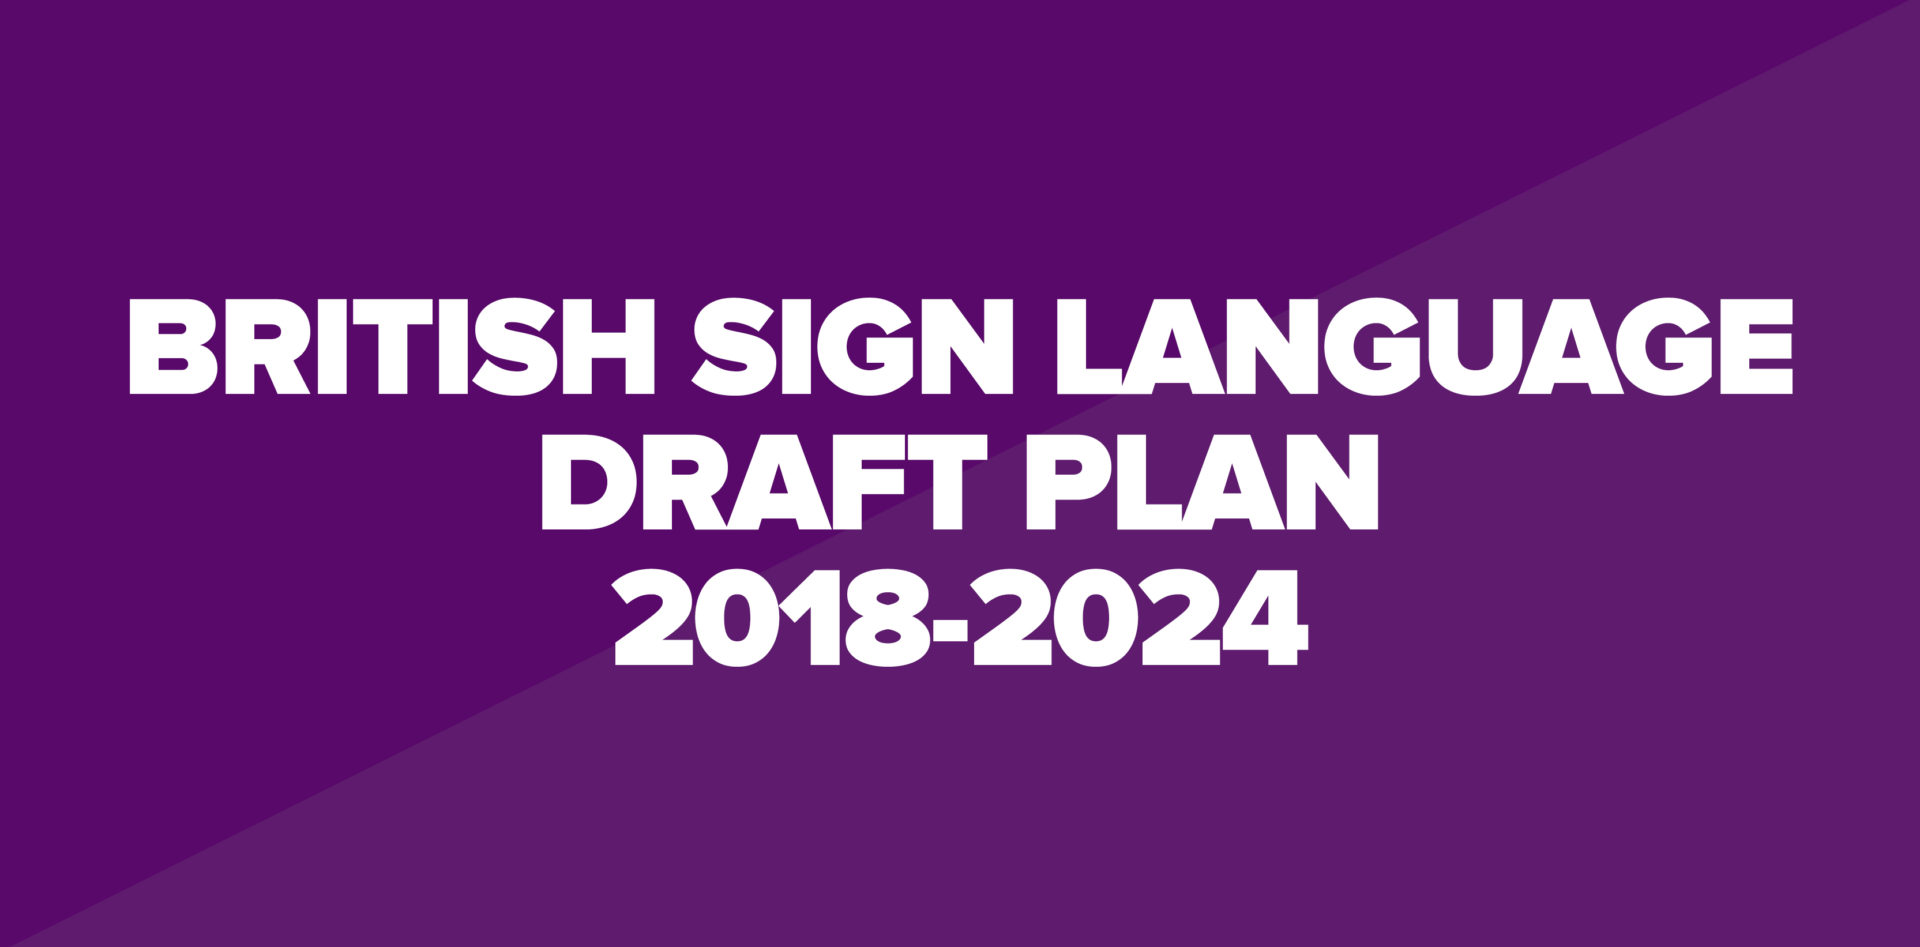 We Need Your Feedback on Our BSL Draft Plan